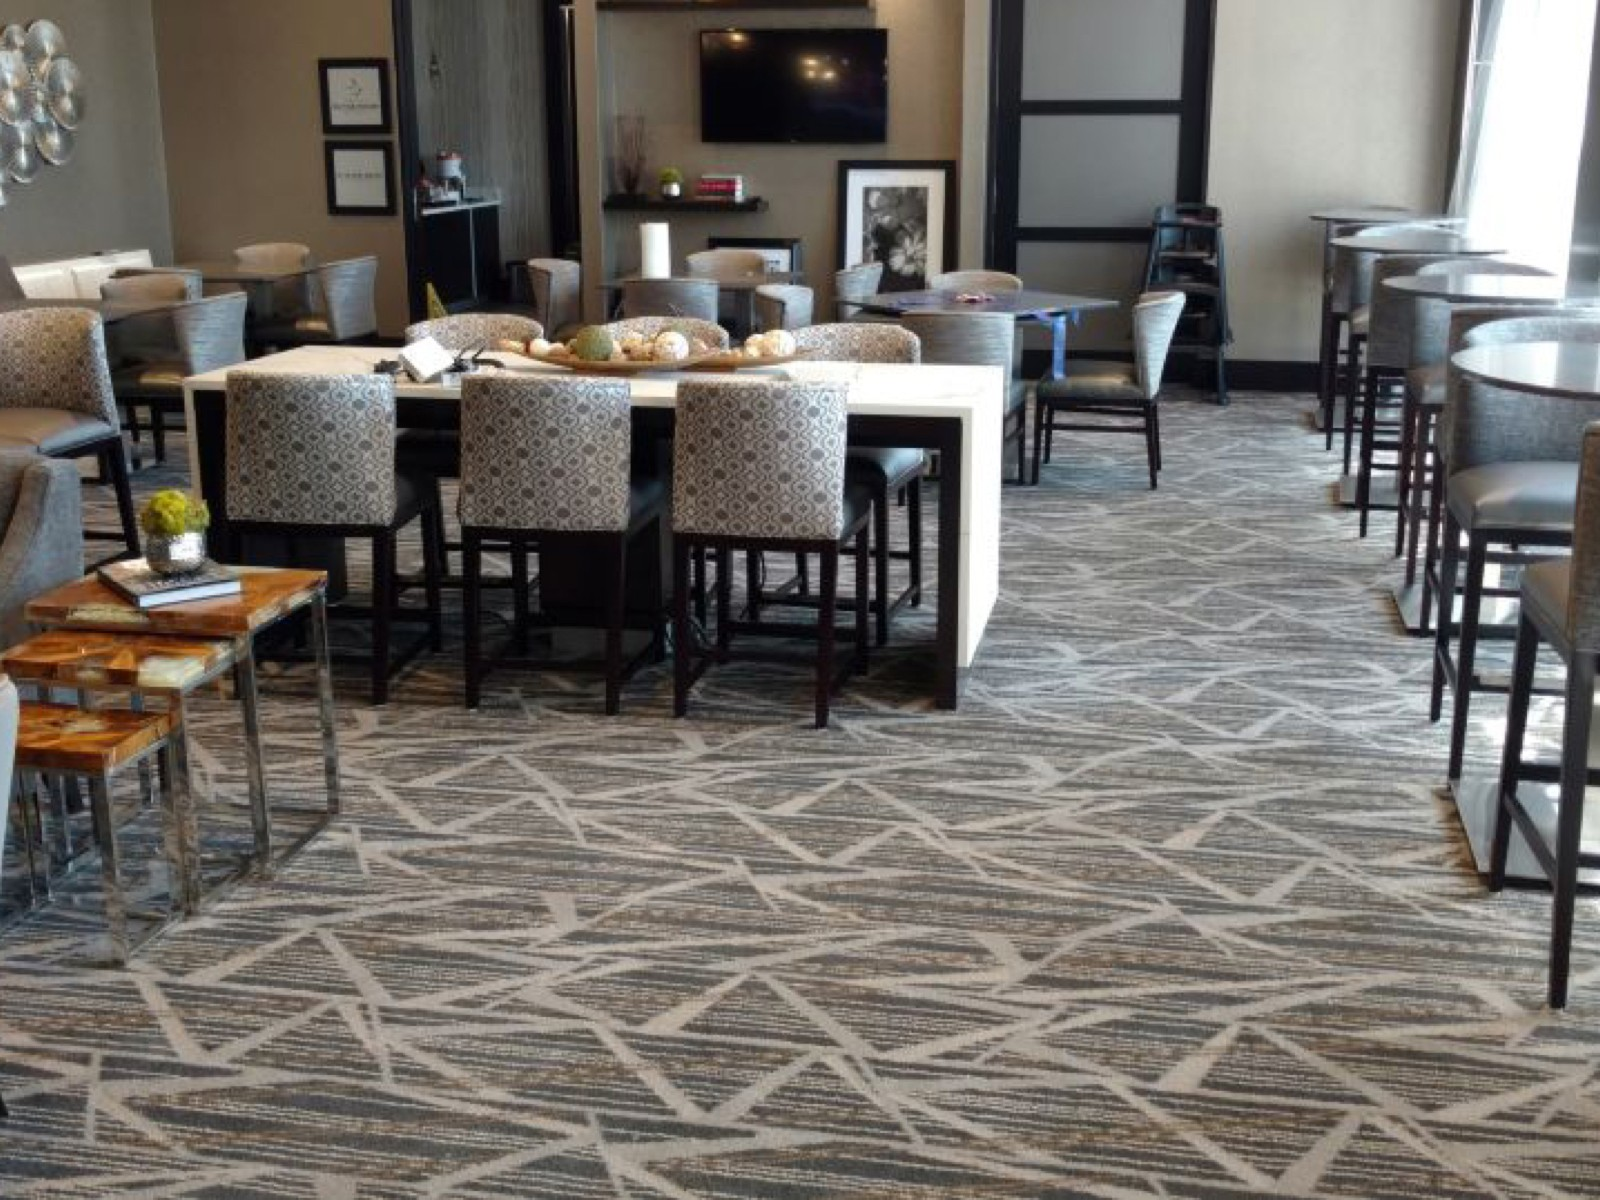 Bridge Water Hampton Inn lobby | Flooring Installation System